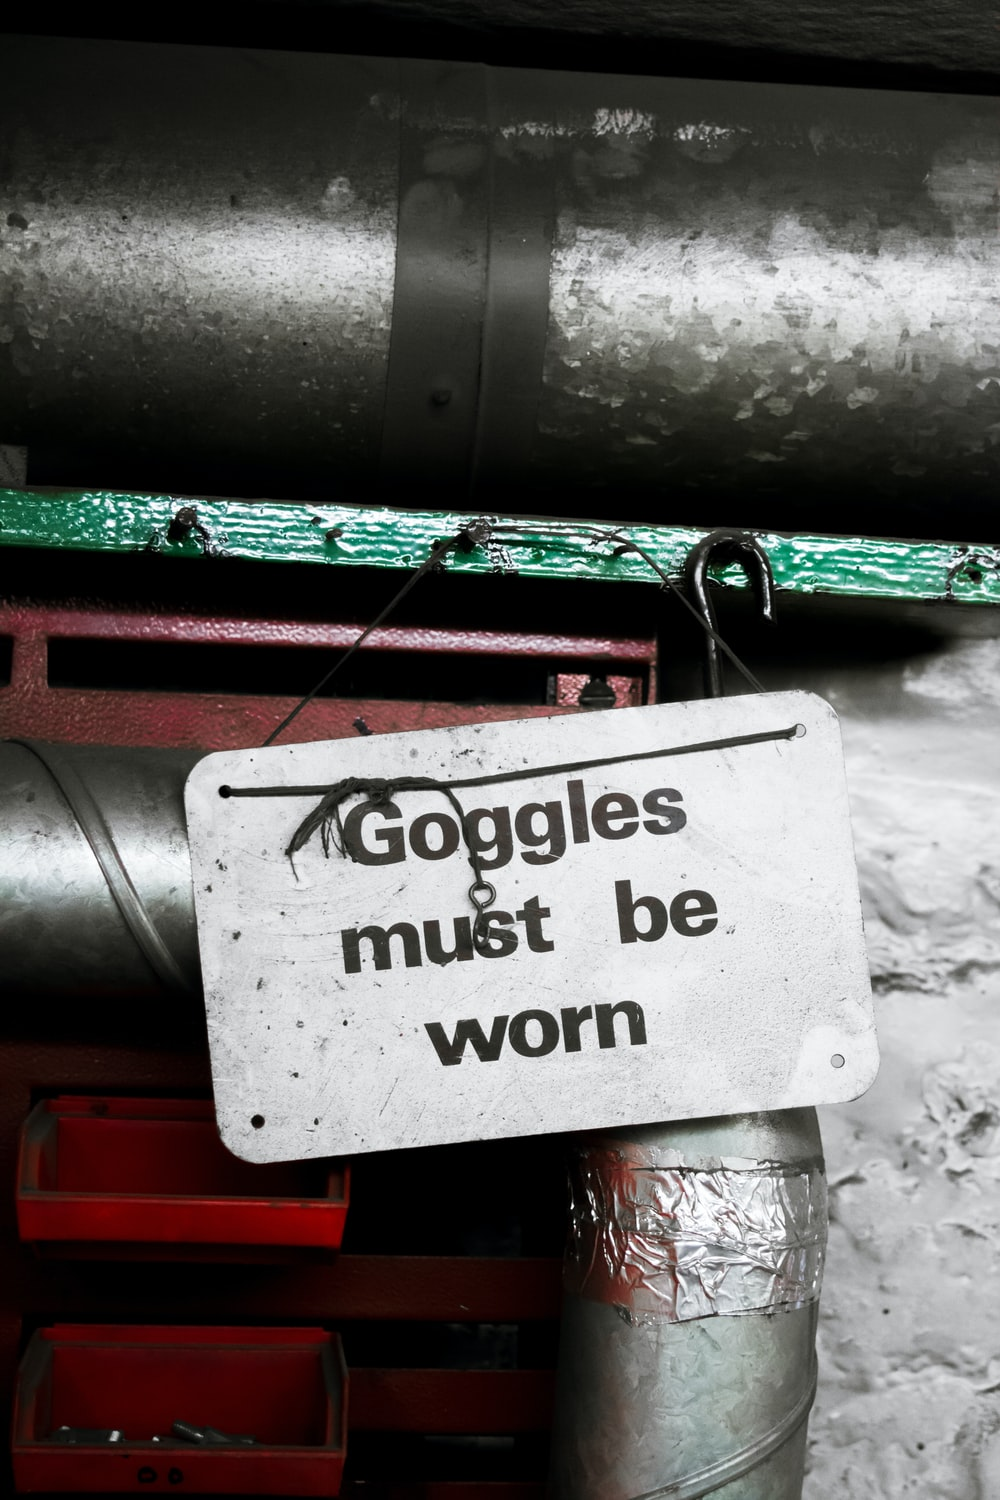 goggle must be worn sign hanging on nail